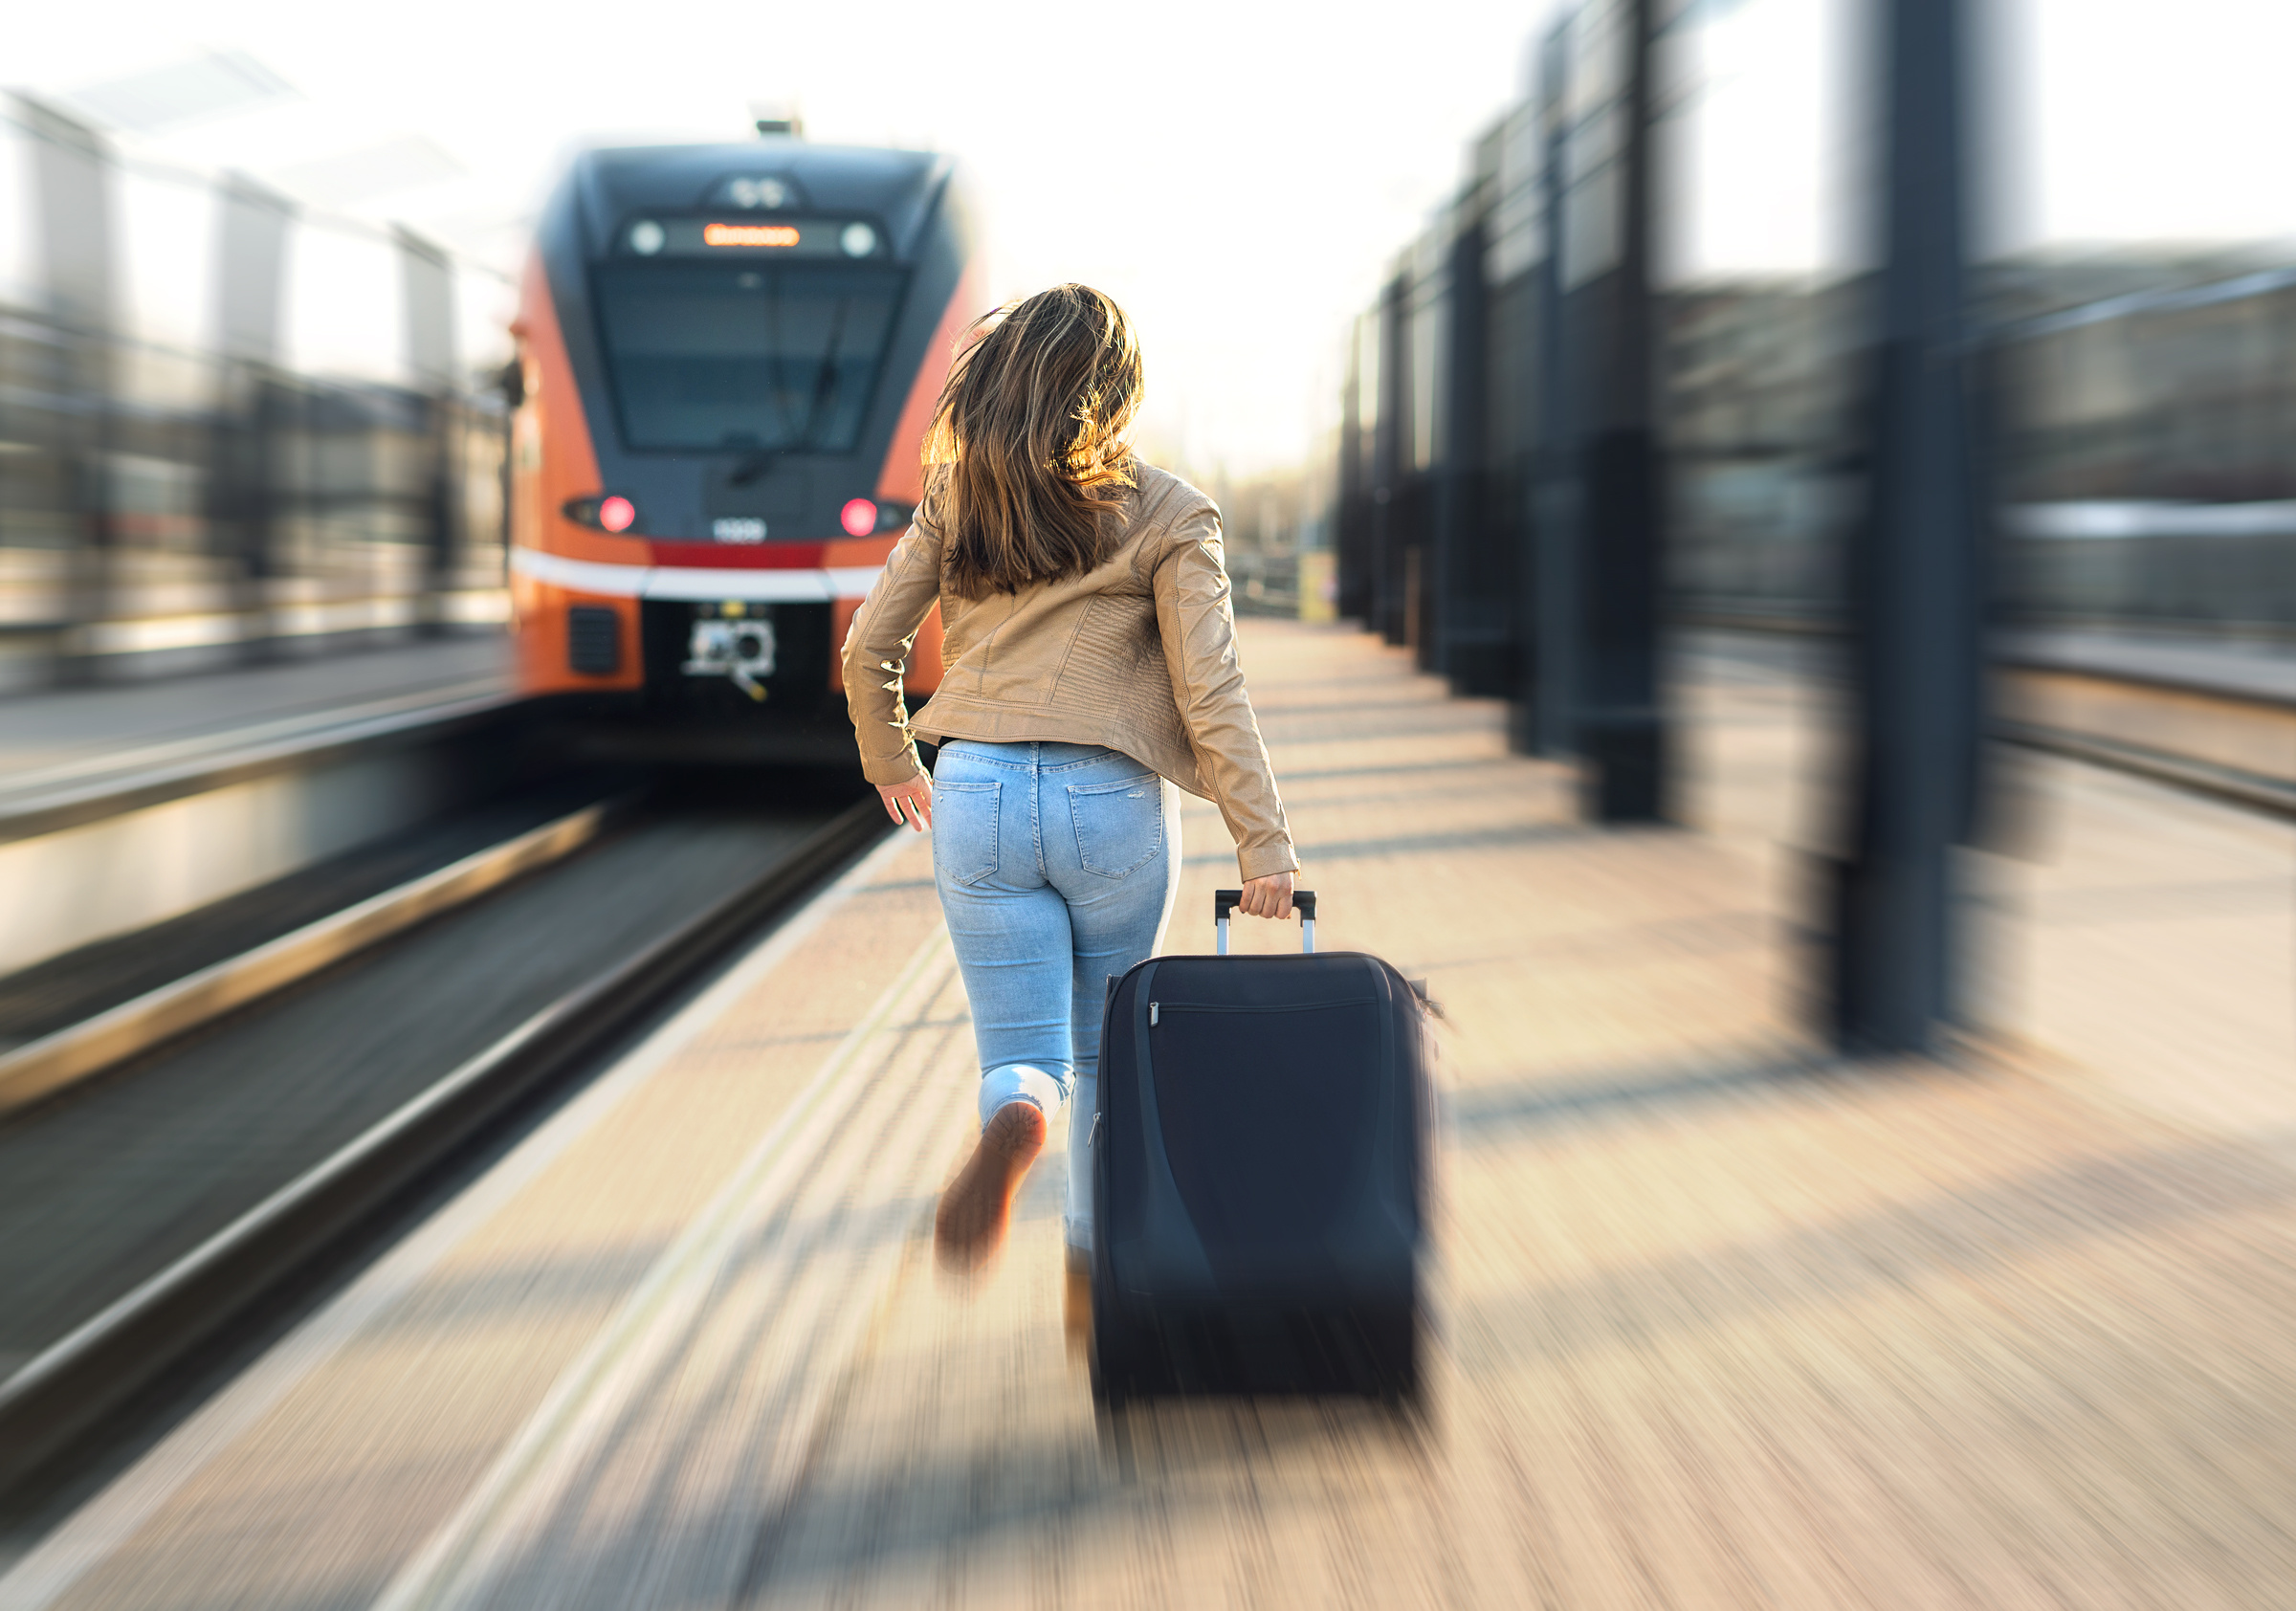 woman is late for train and rushes down the platform to catch it